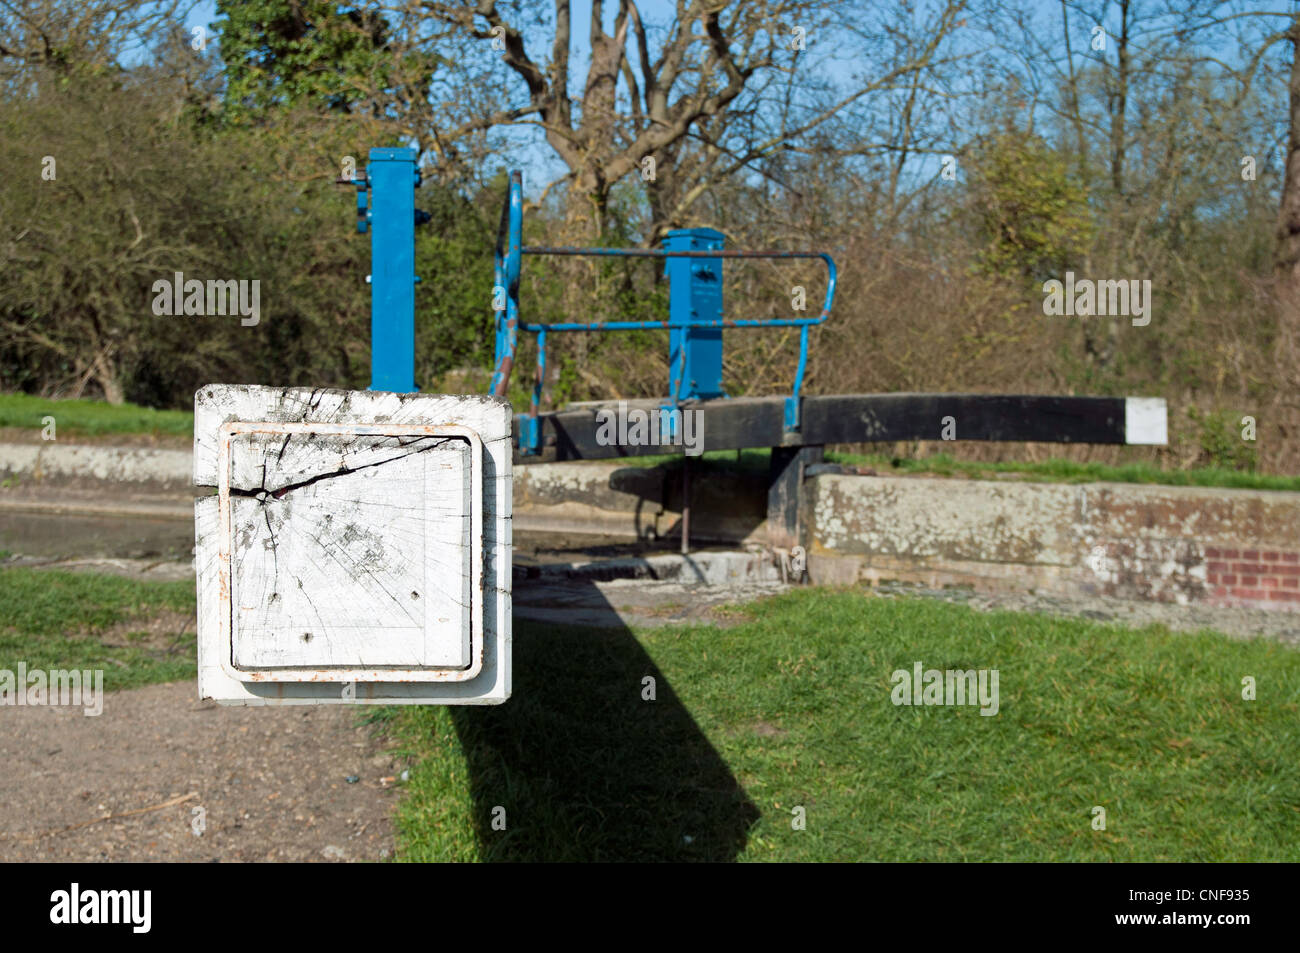 Lock gates at river chelmer end of balance beam over towpath - Stock Image